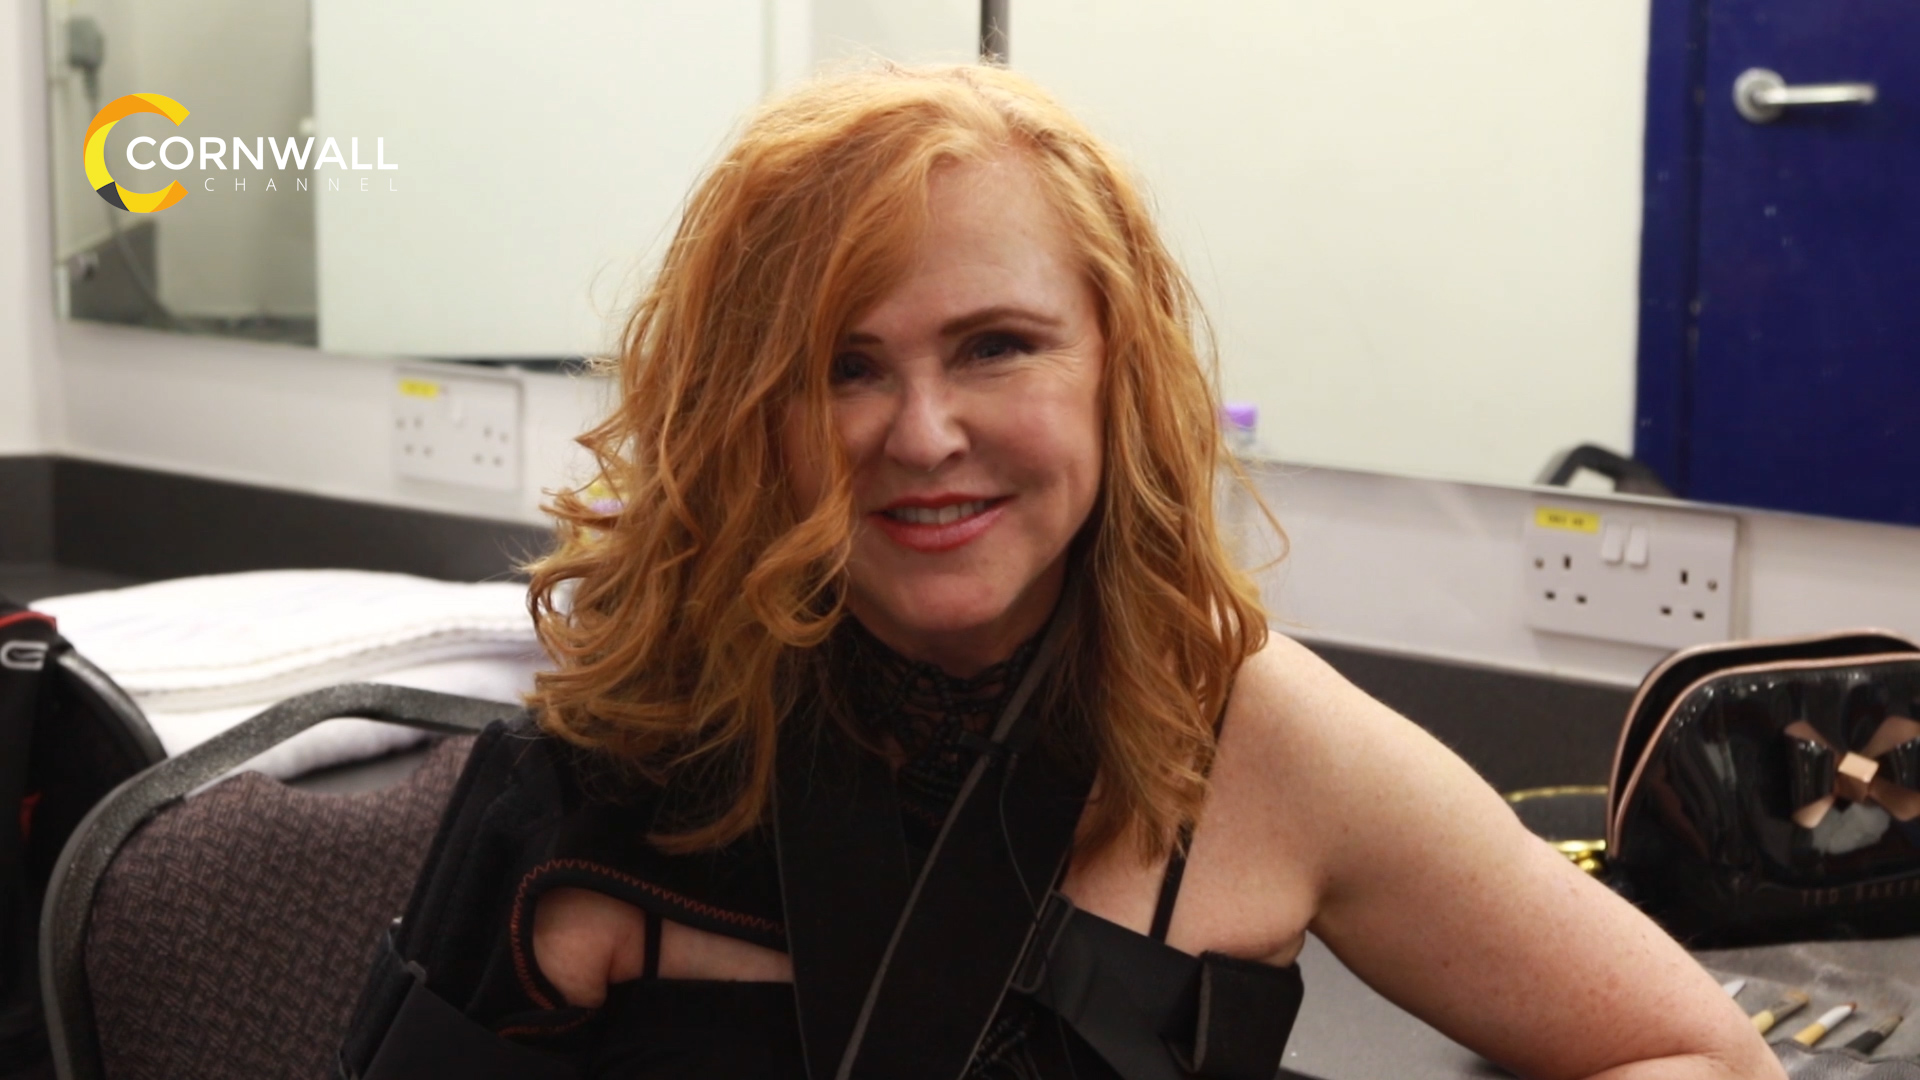 Carol Decker T Pau Interview Cornwall Channel